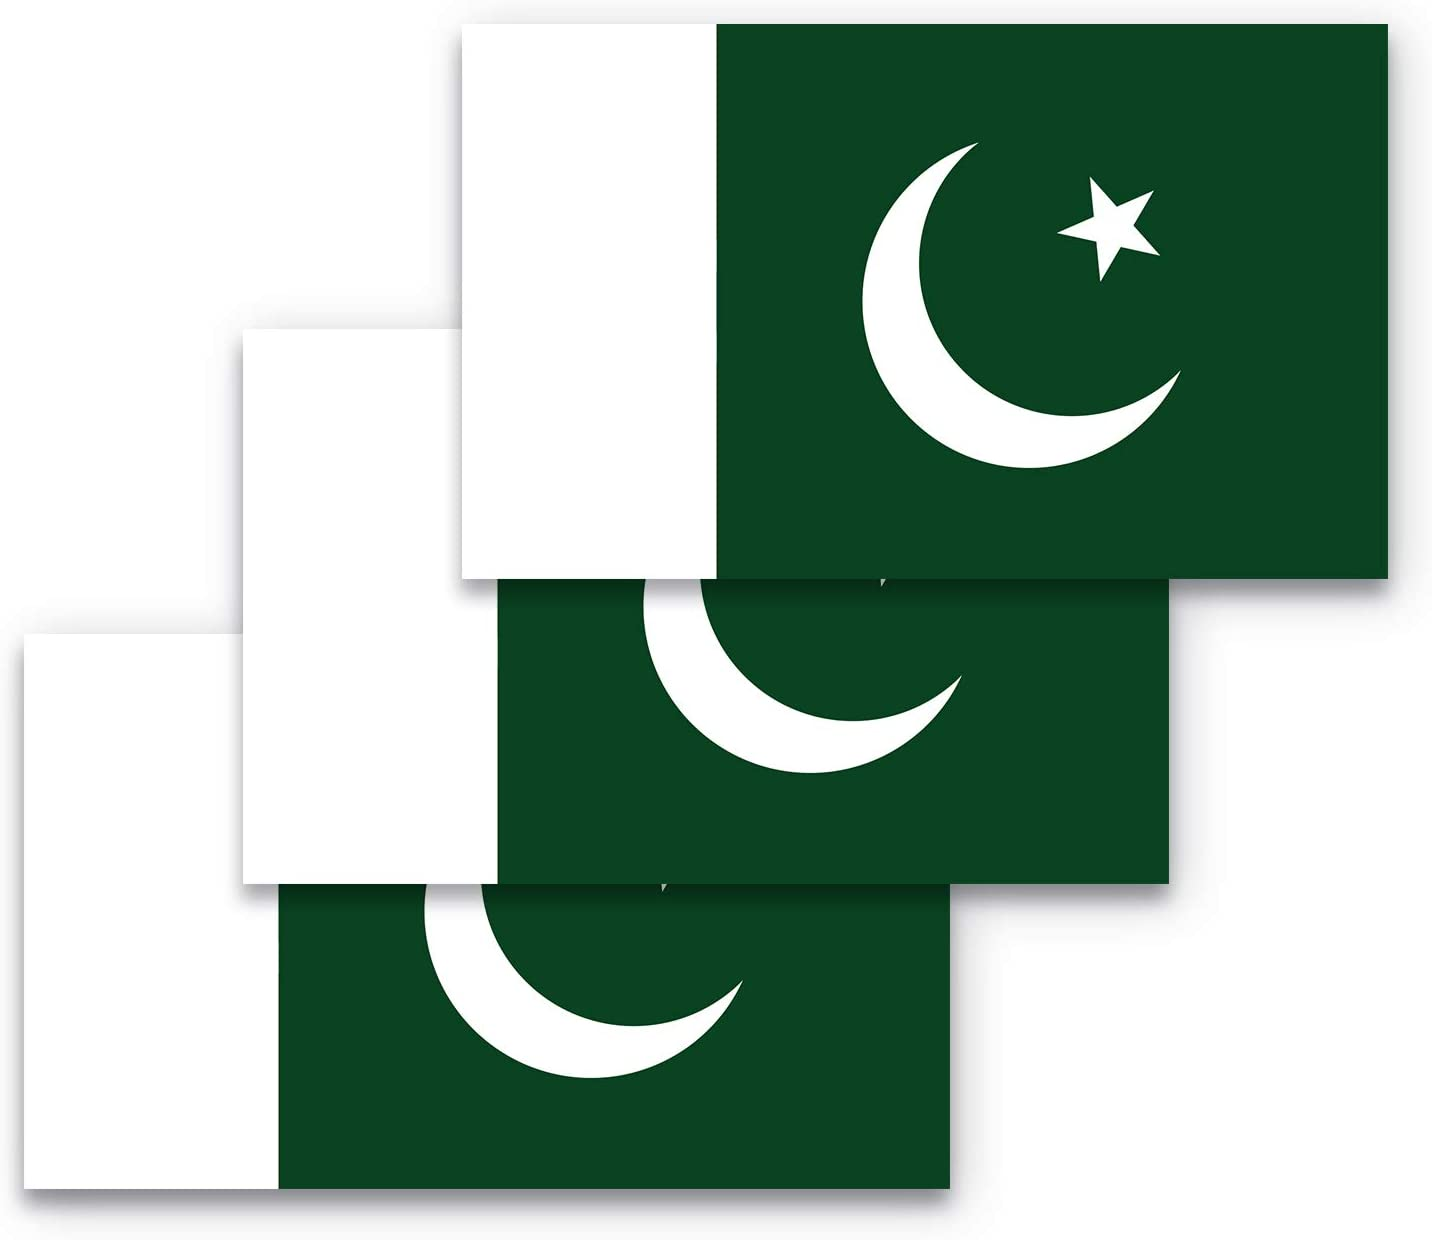 3x5 Pakistan Flag Bumper Sticker 3-Pack Made with Durable, Waterproof Materials, Pakistani Flag Bumper Sticker, Flag of Pakistan Bumper Sticker, Pakistan Bumper Sticker, Pakistan Sticker